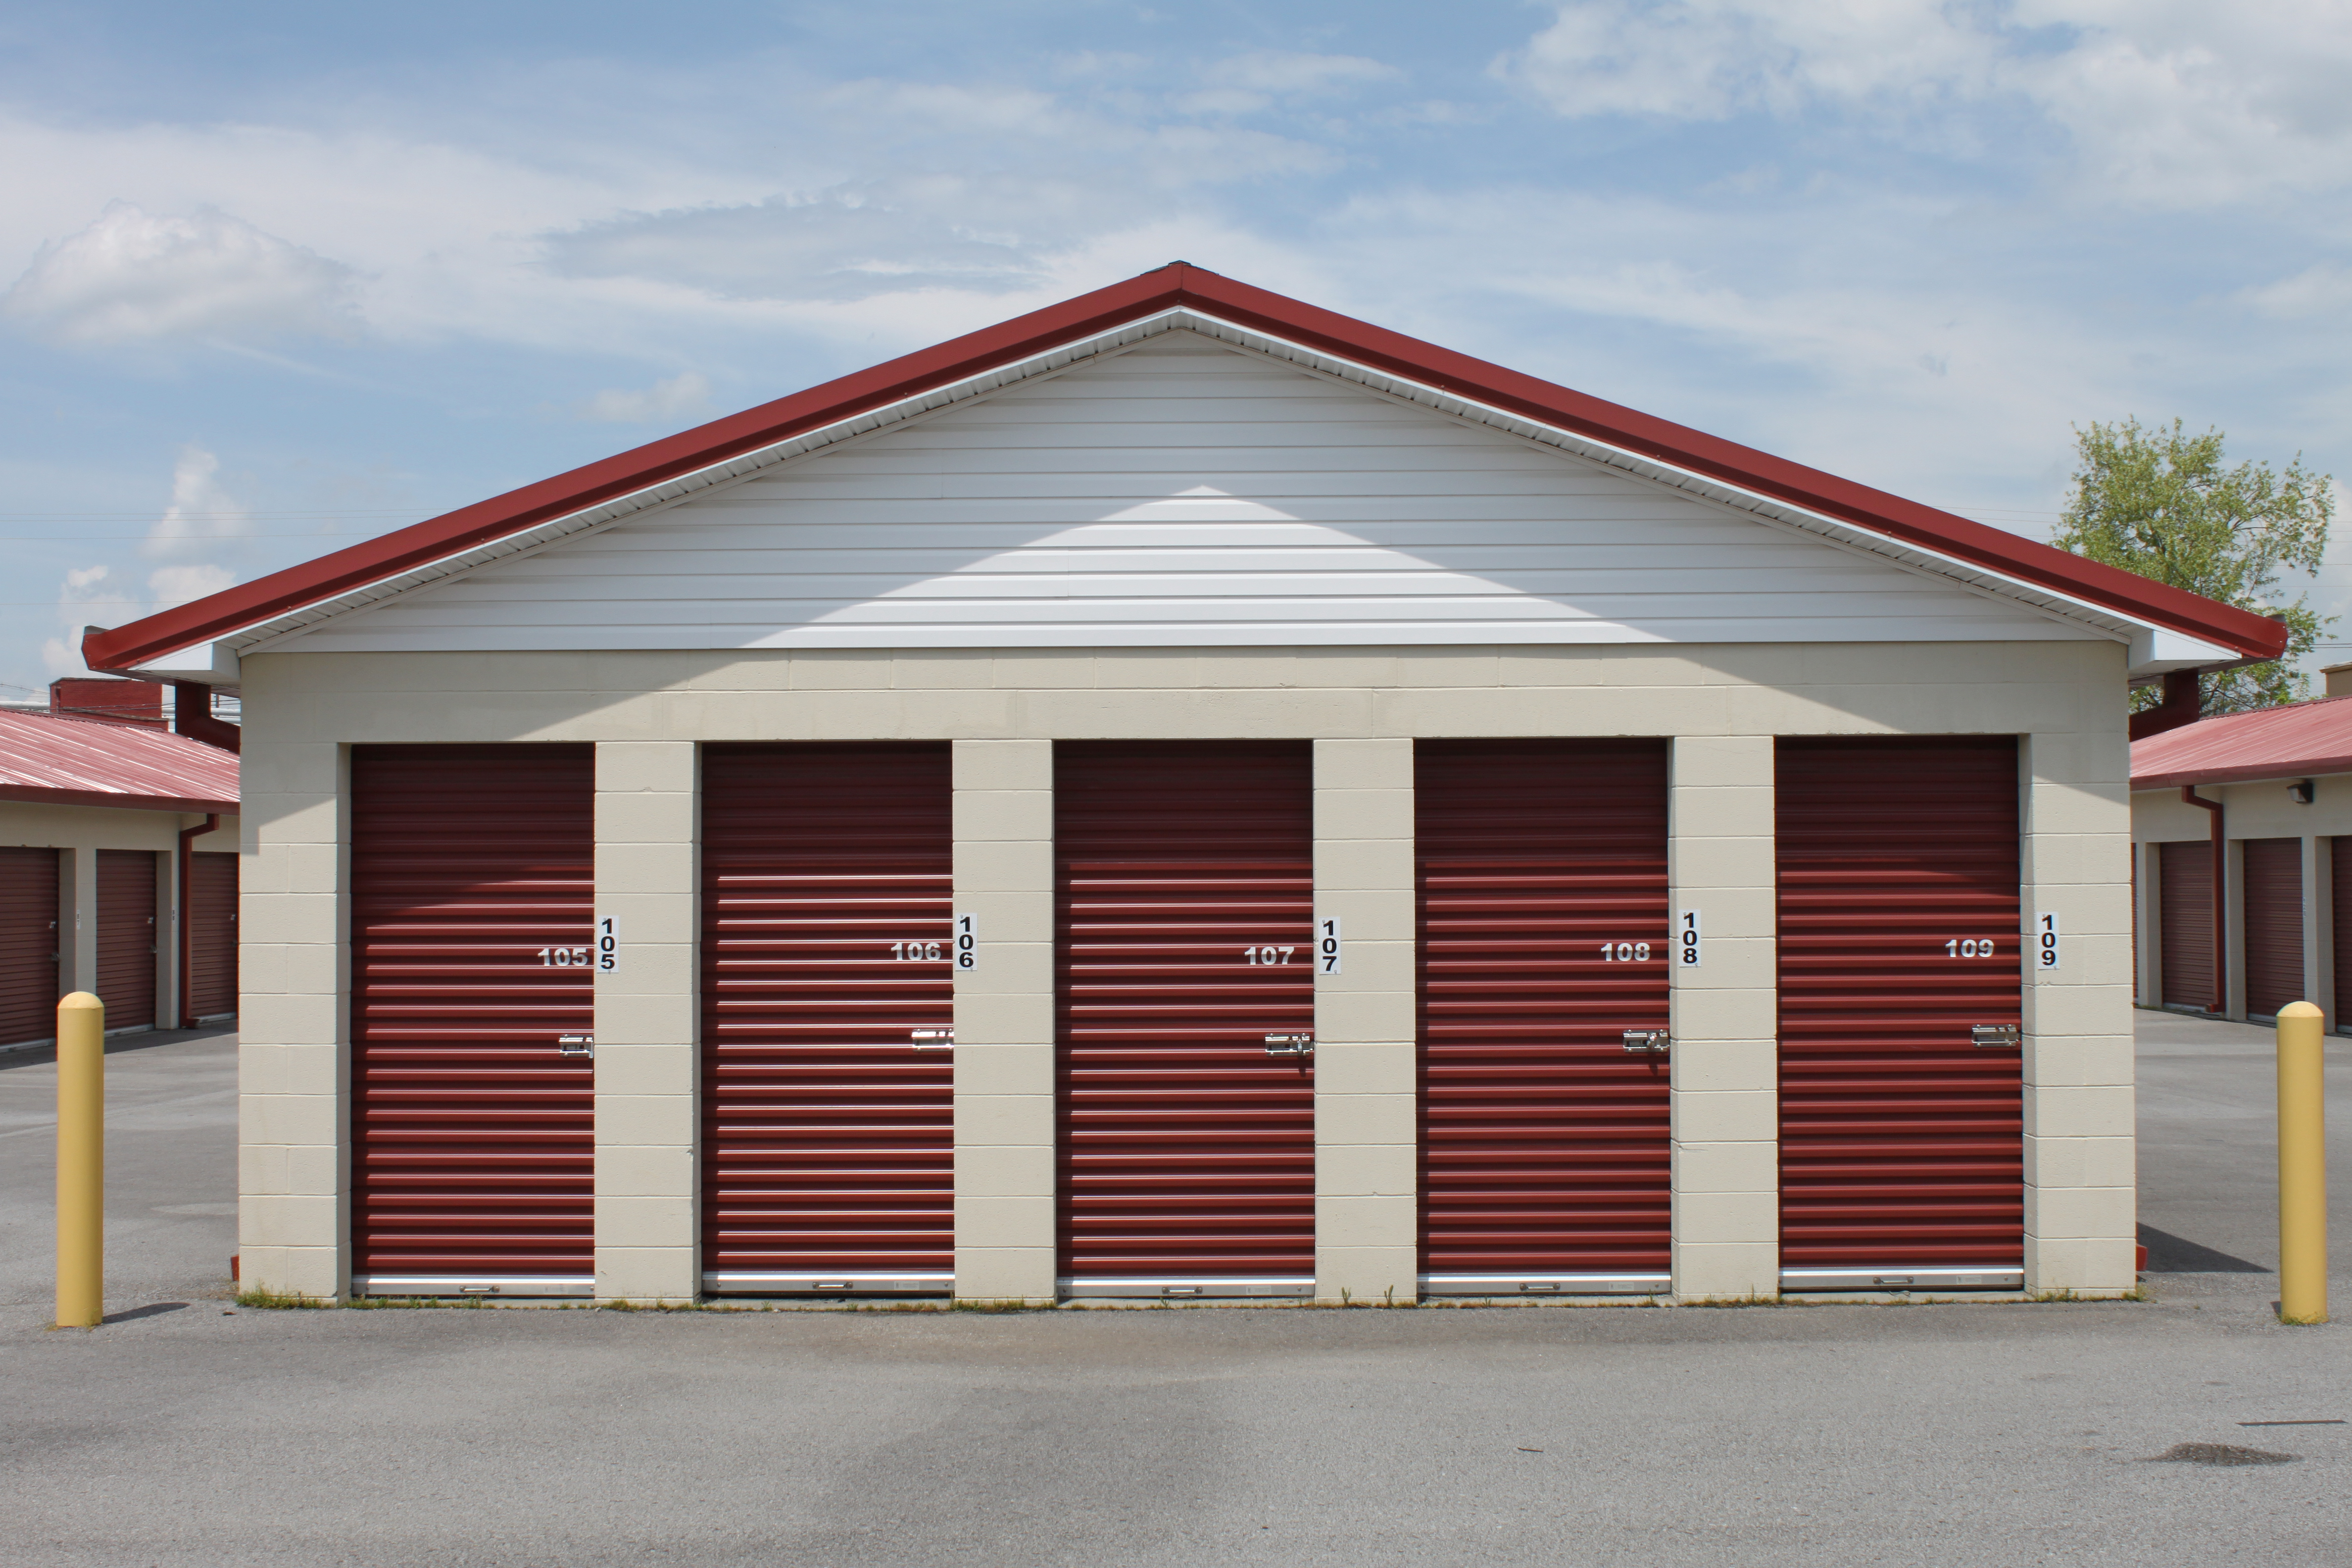 K&K Storage in McMinnville, TN